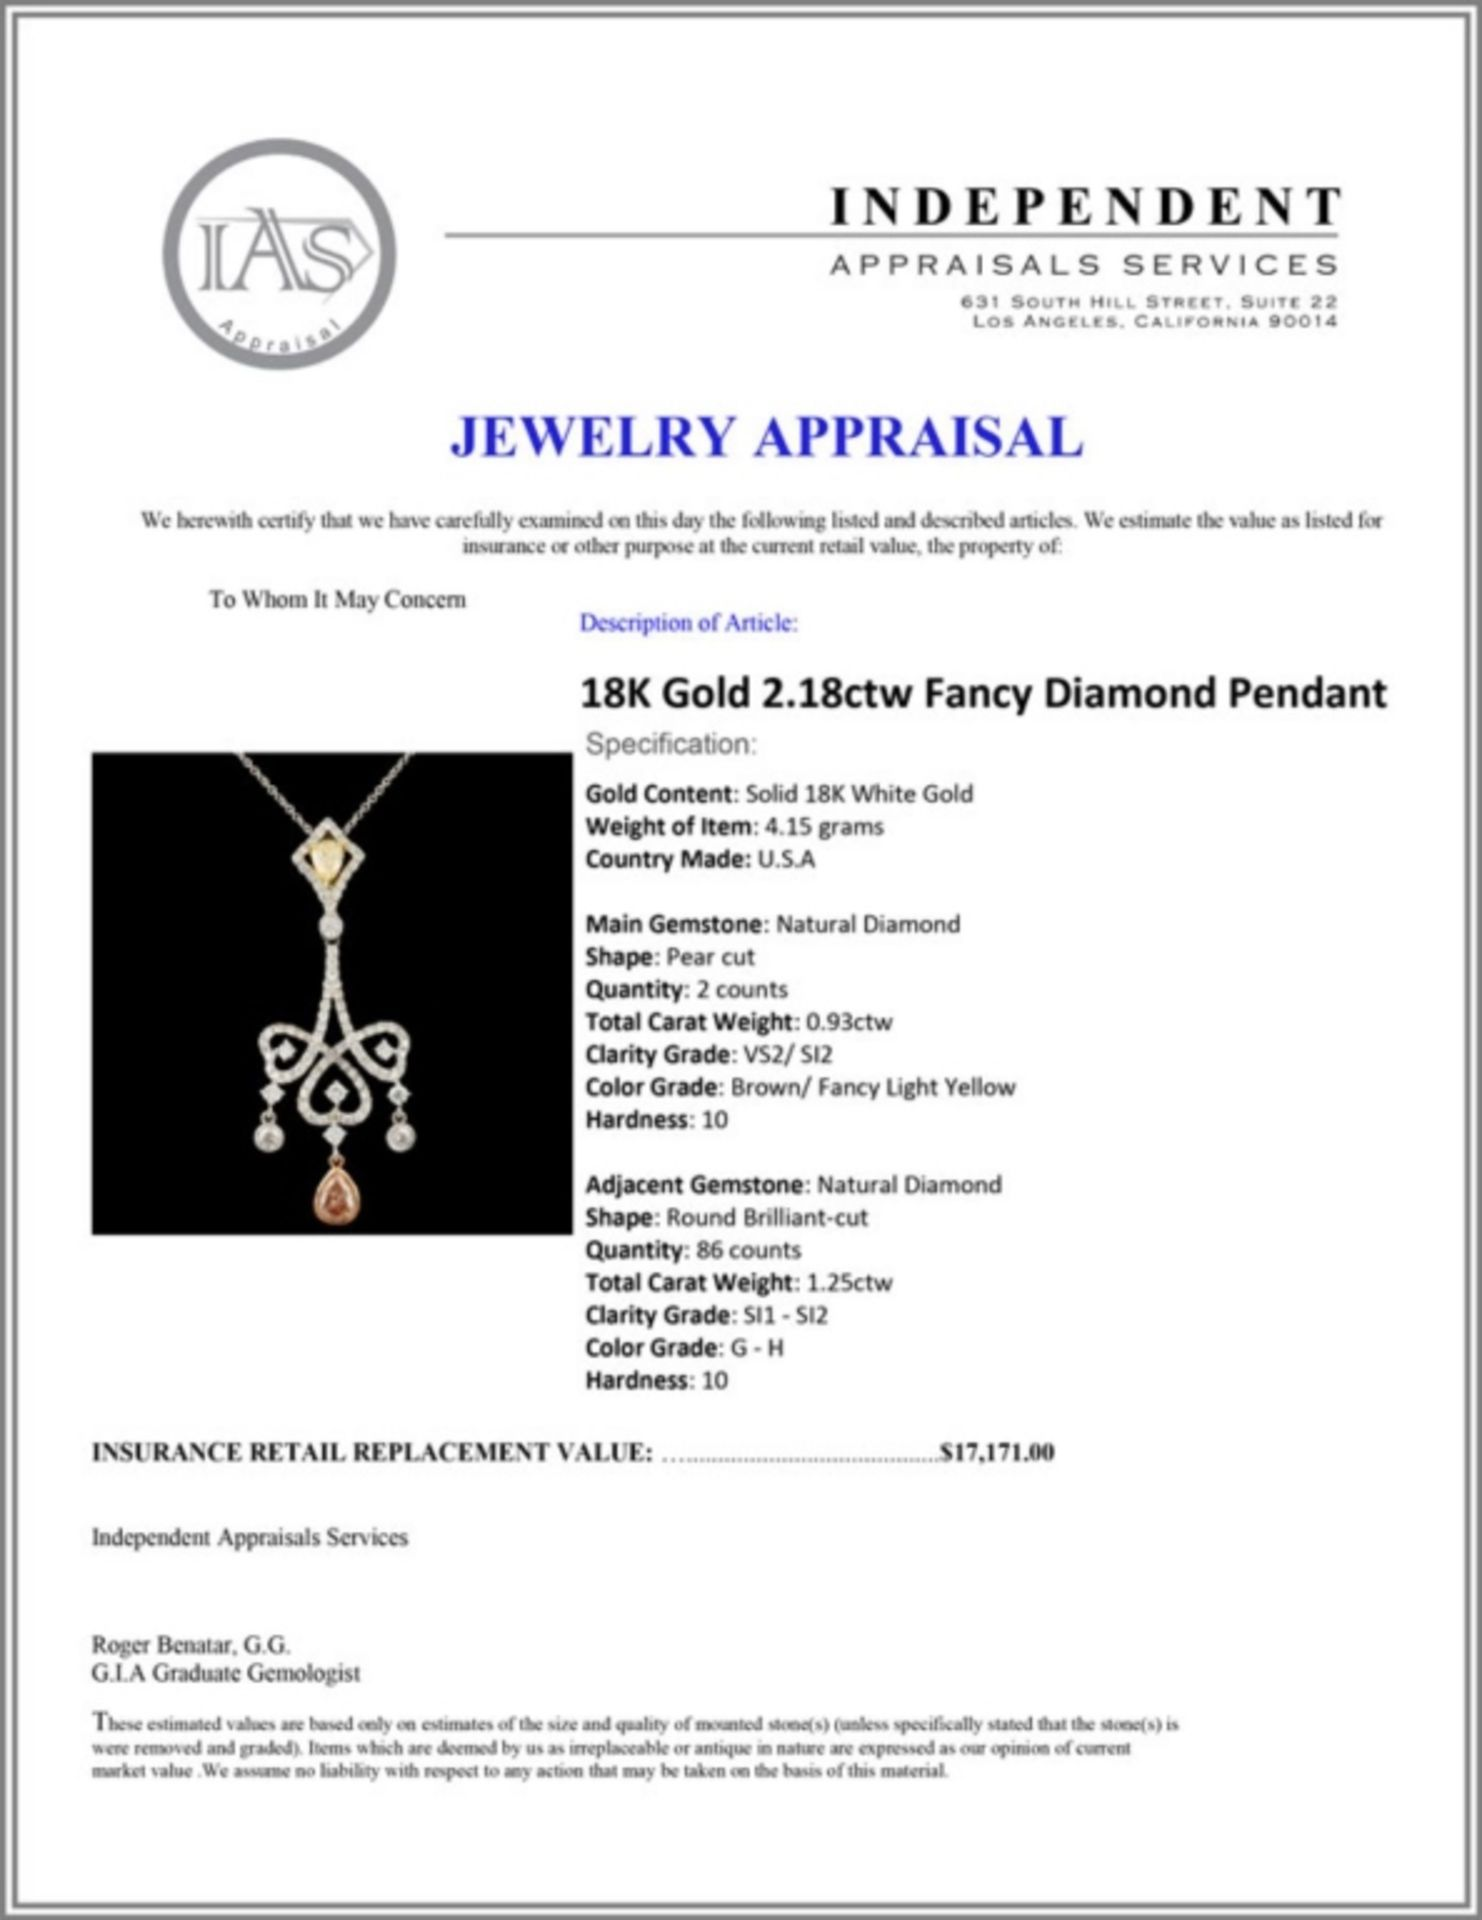 18K Gold 2.18ctw Fancy Diamond Pendant - Image 4 of 4